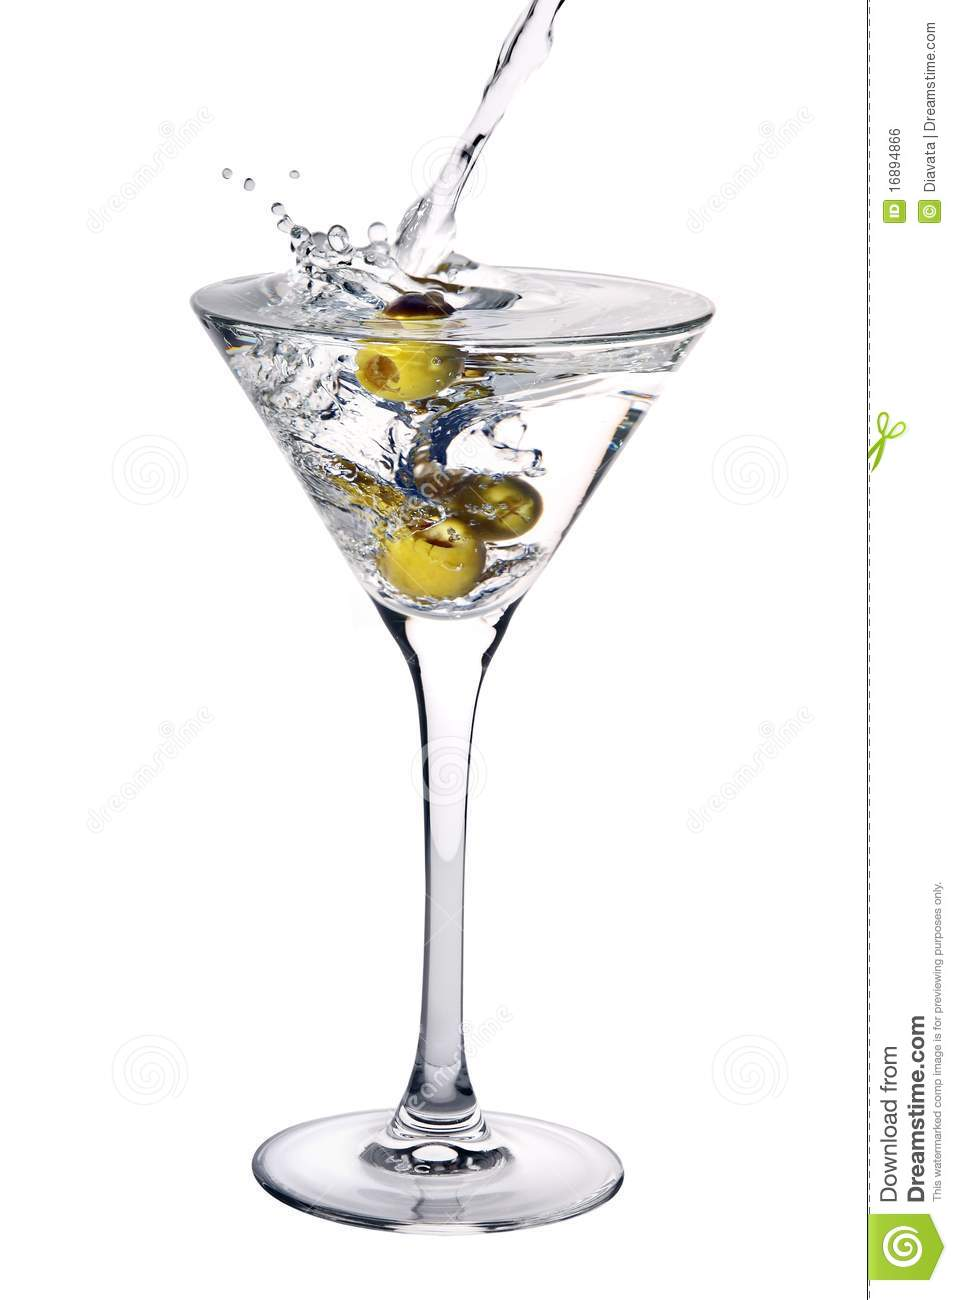 Martini Cocktail With Olives And Splash Royalty Free Stock